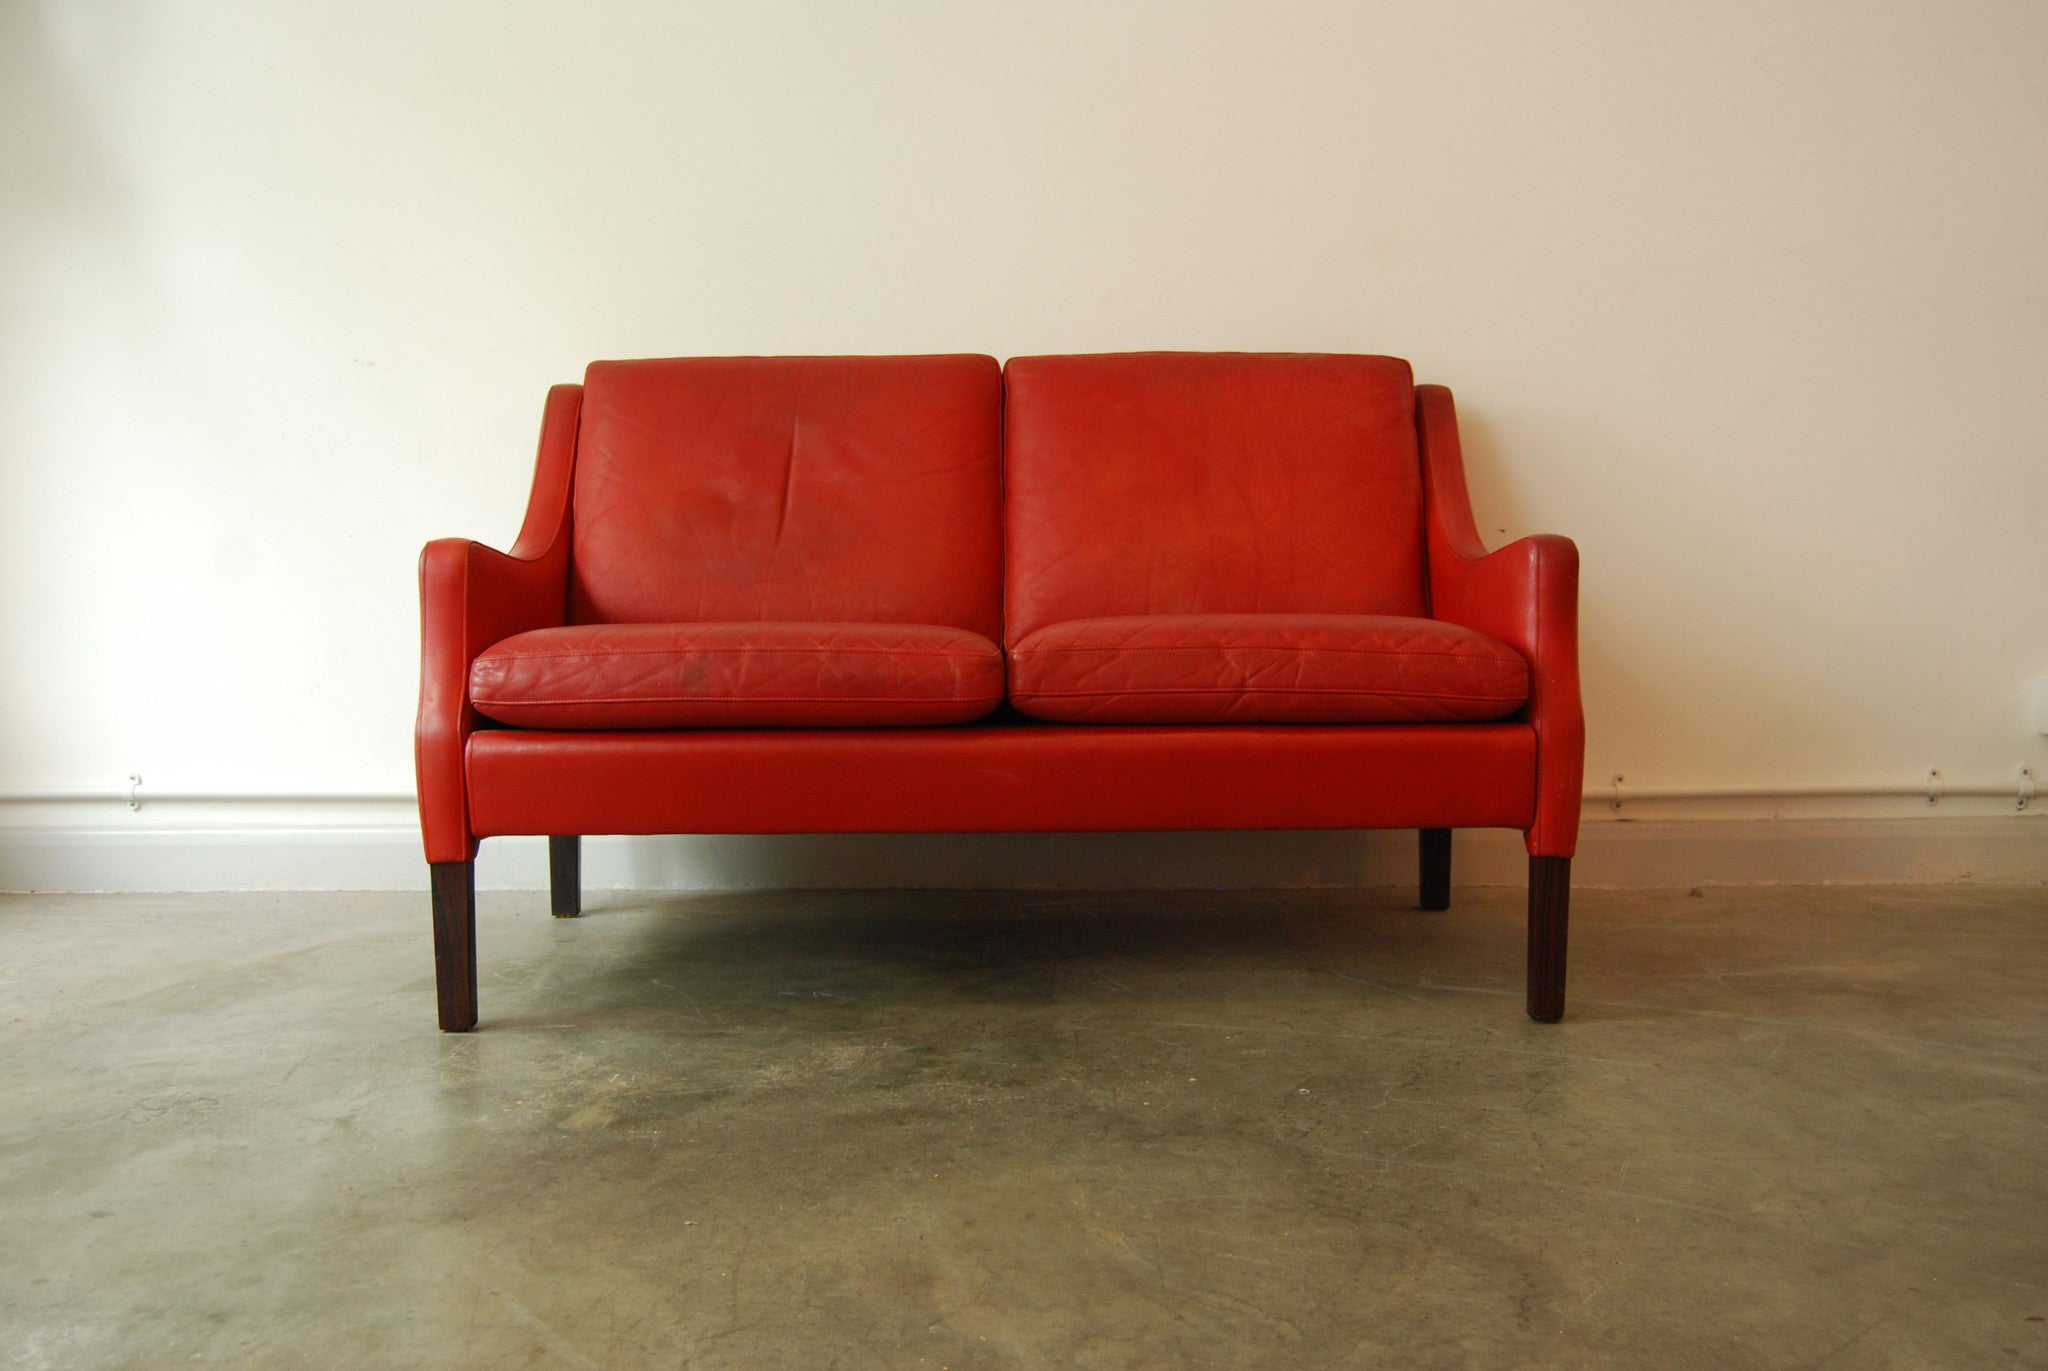 Two seat sofa in red leather